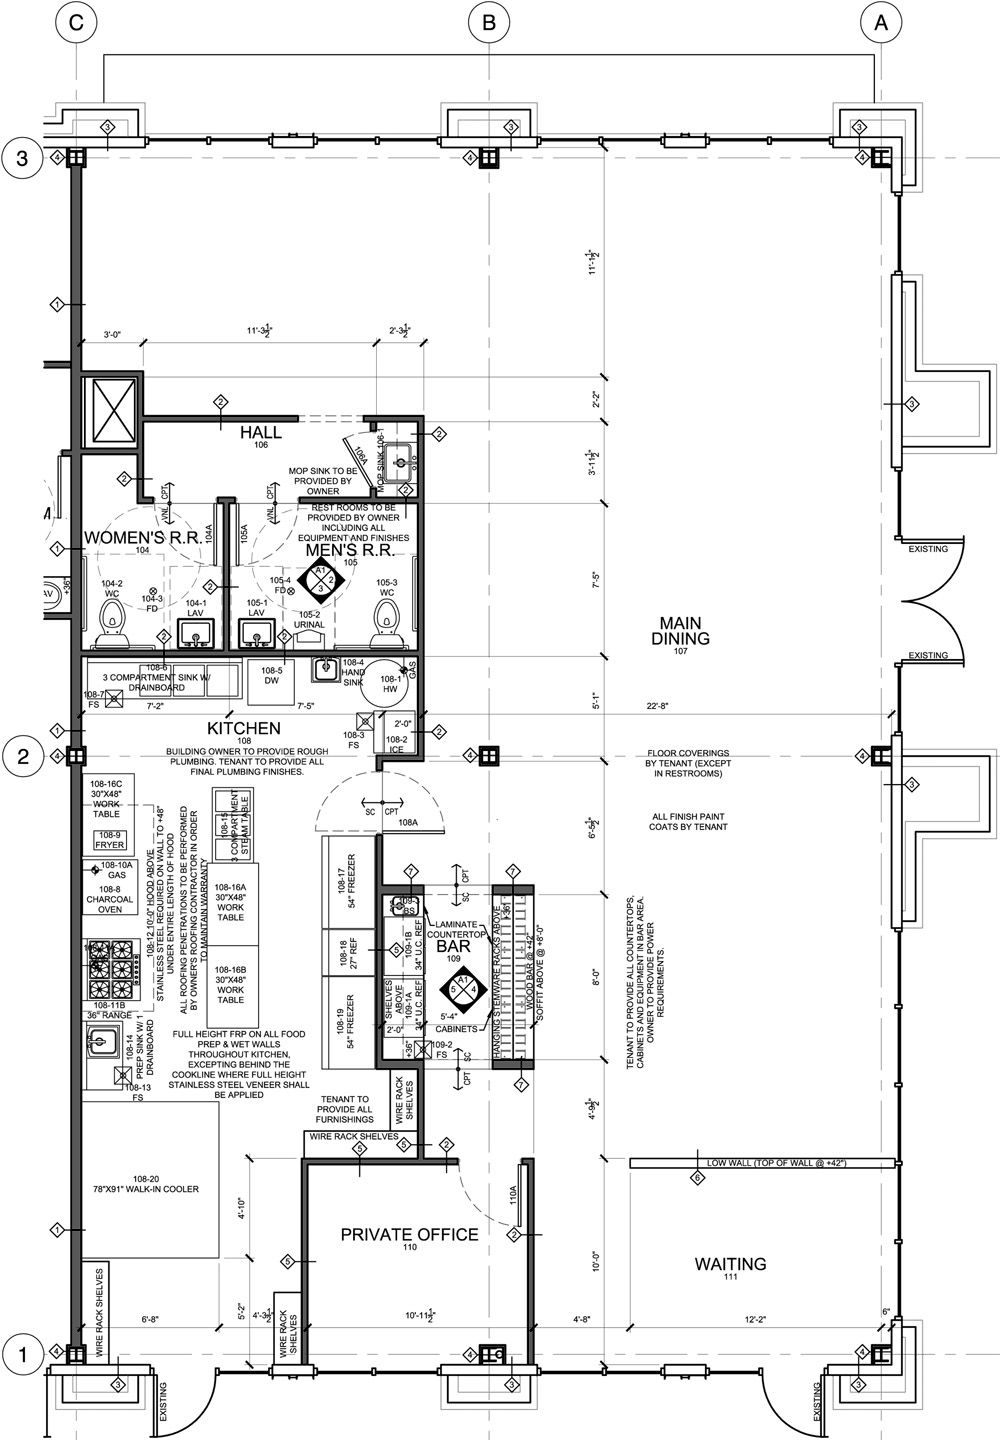 Kitchen plan and layout - 20 Popular Kitchen Layout Design Ideas